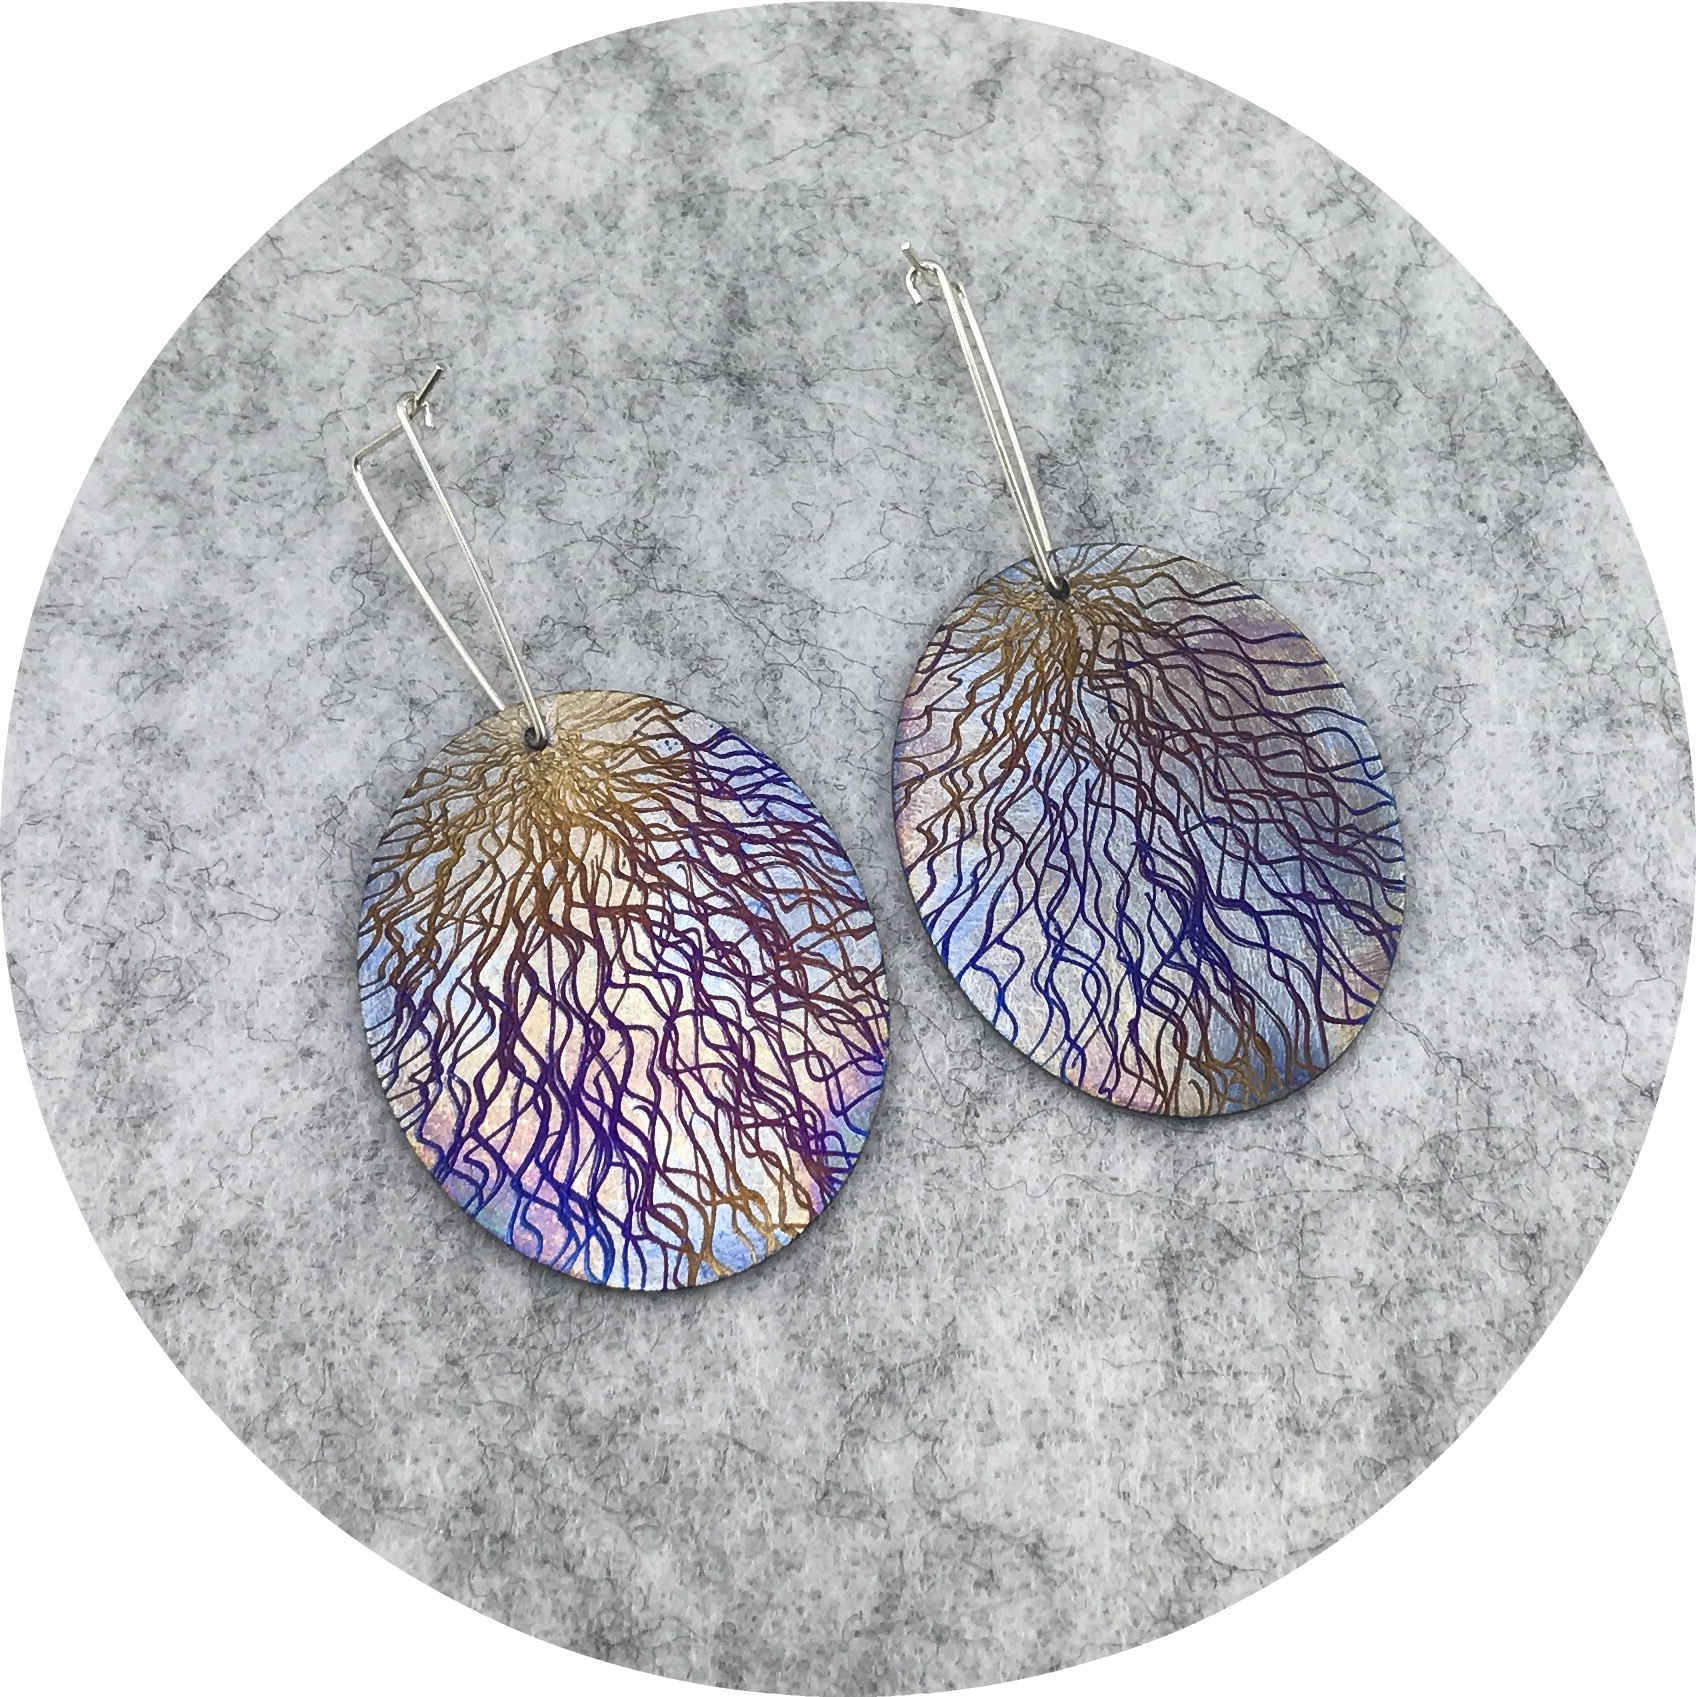 Tanja Von Behrens - Large Drop Oval Lighting Storm Earrings in Sterling Silver and Heat Coloured Titanium.